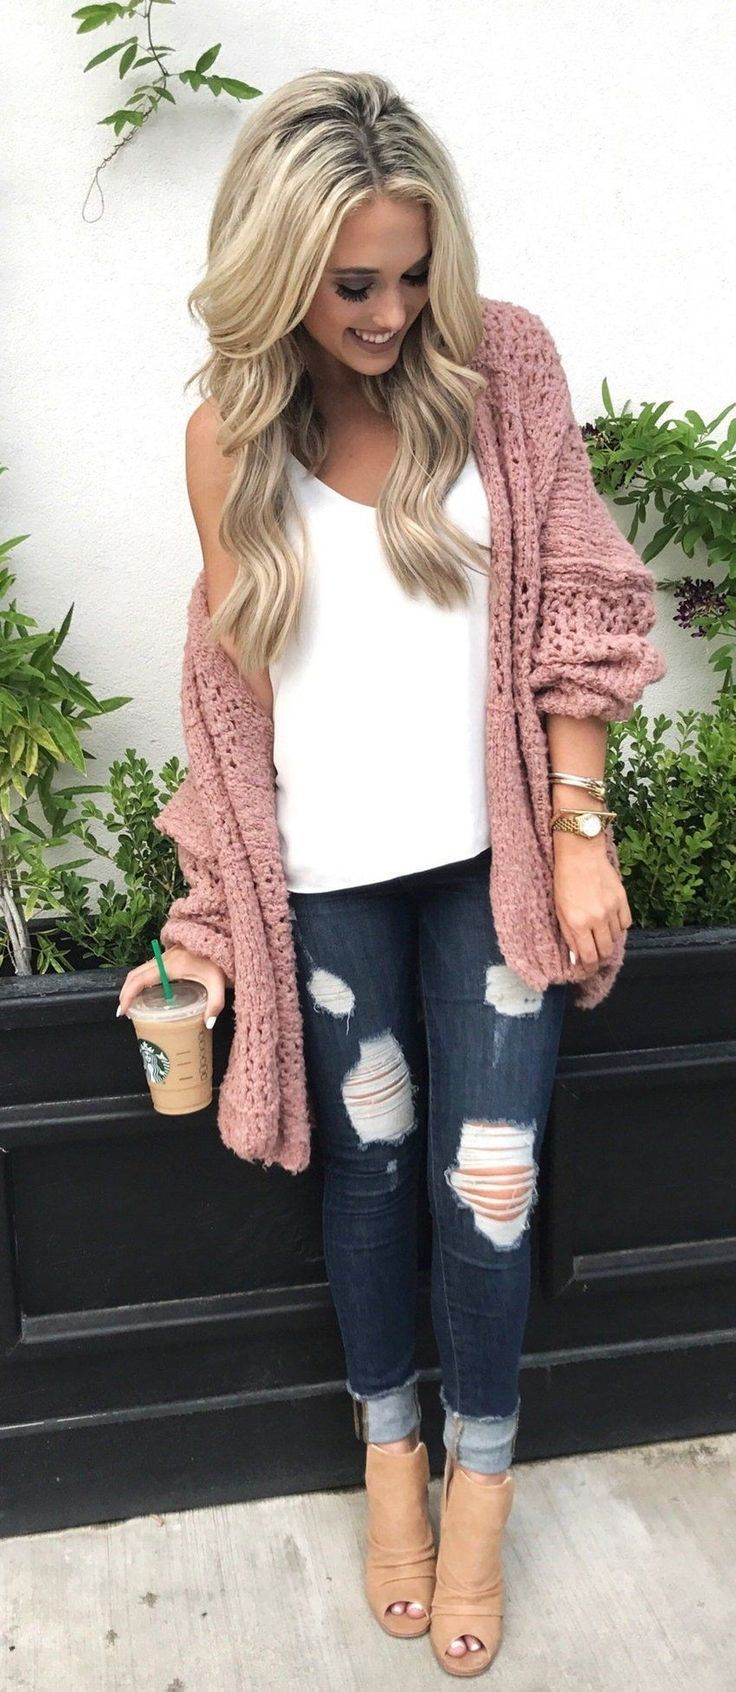 Ripped jeans flannel shirt  winter outfits womenus pink knit cardigan white top blue